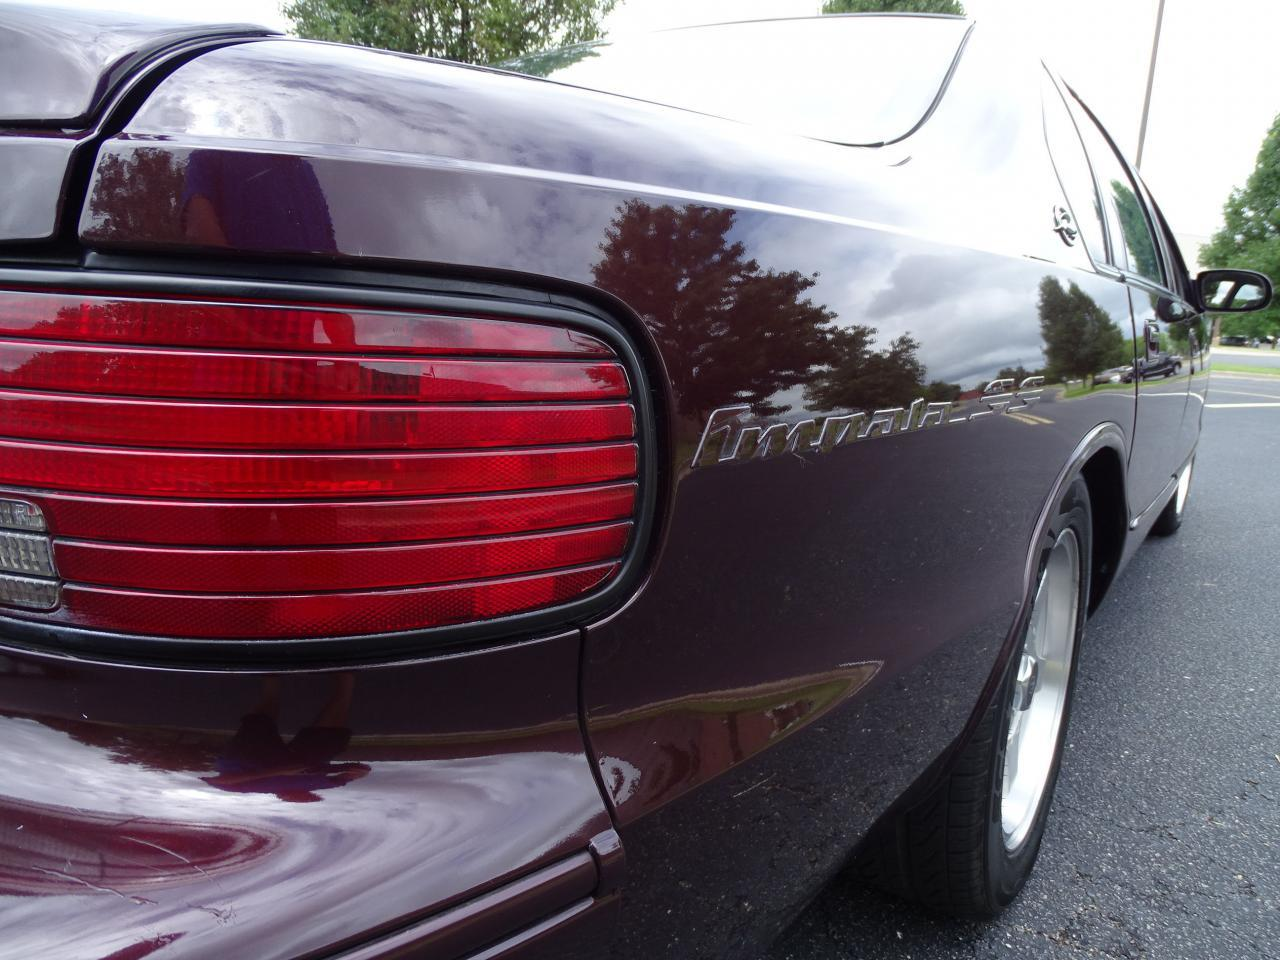 Large Picture of '96 Chevrolet Impala located in Illinois Offered by Gateway Classic Cars - St. Louis - QB5K